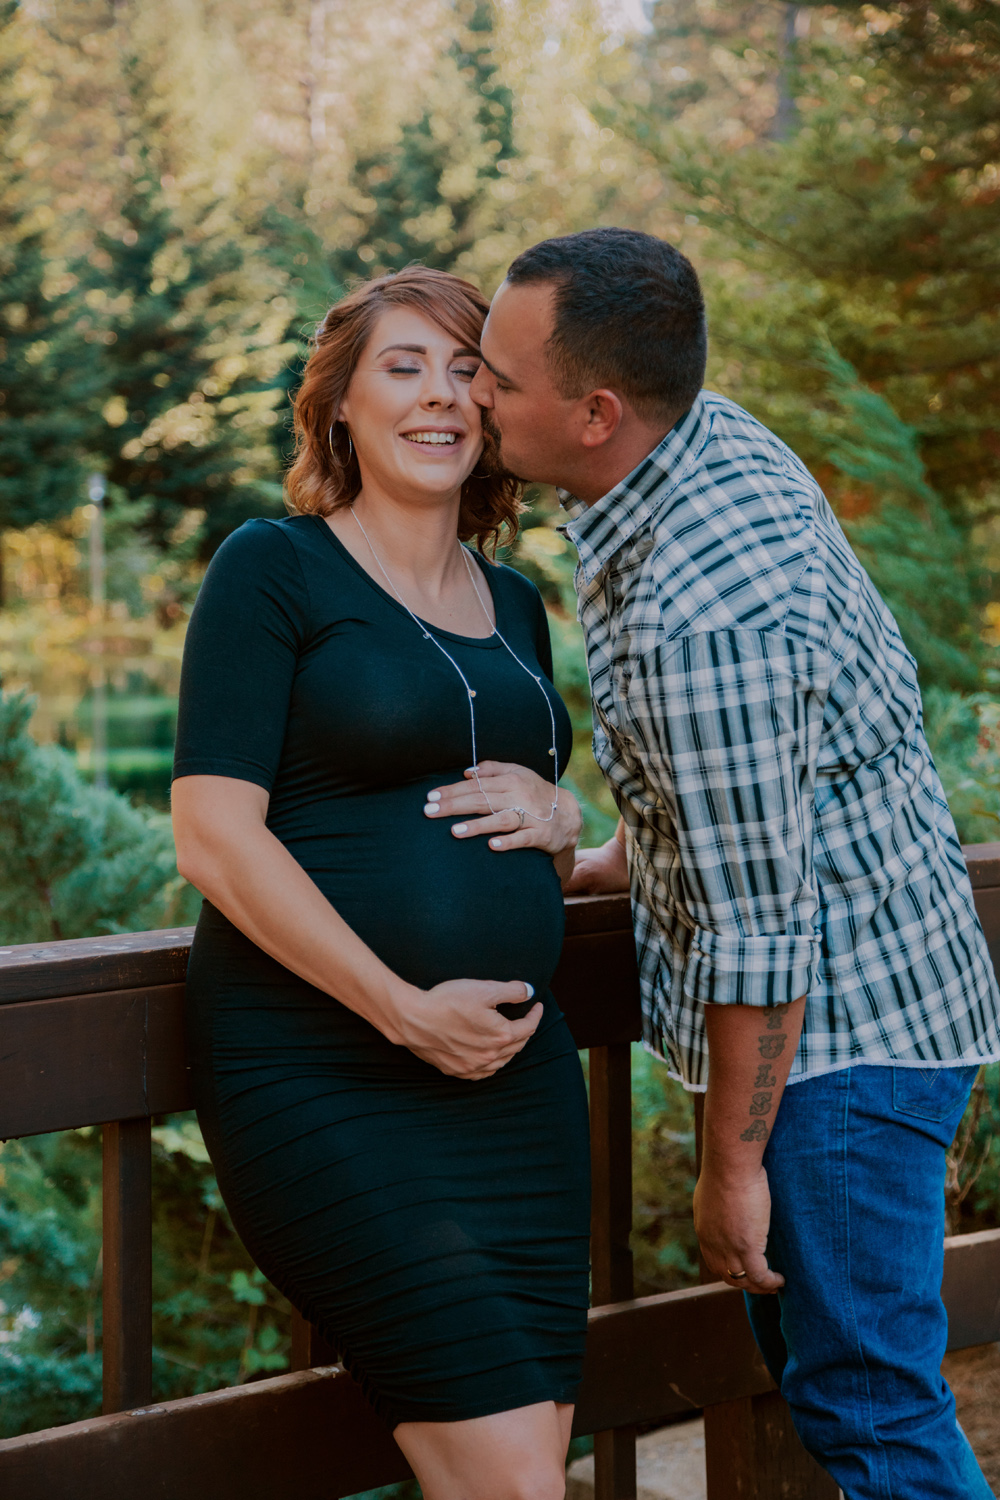 Chico-ca-photography-Maternity-session-013-2.jpg